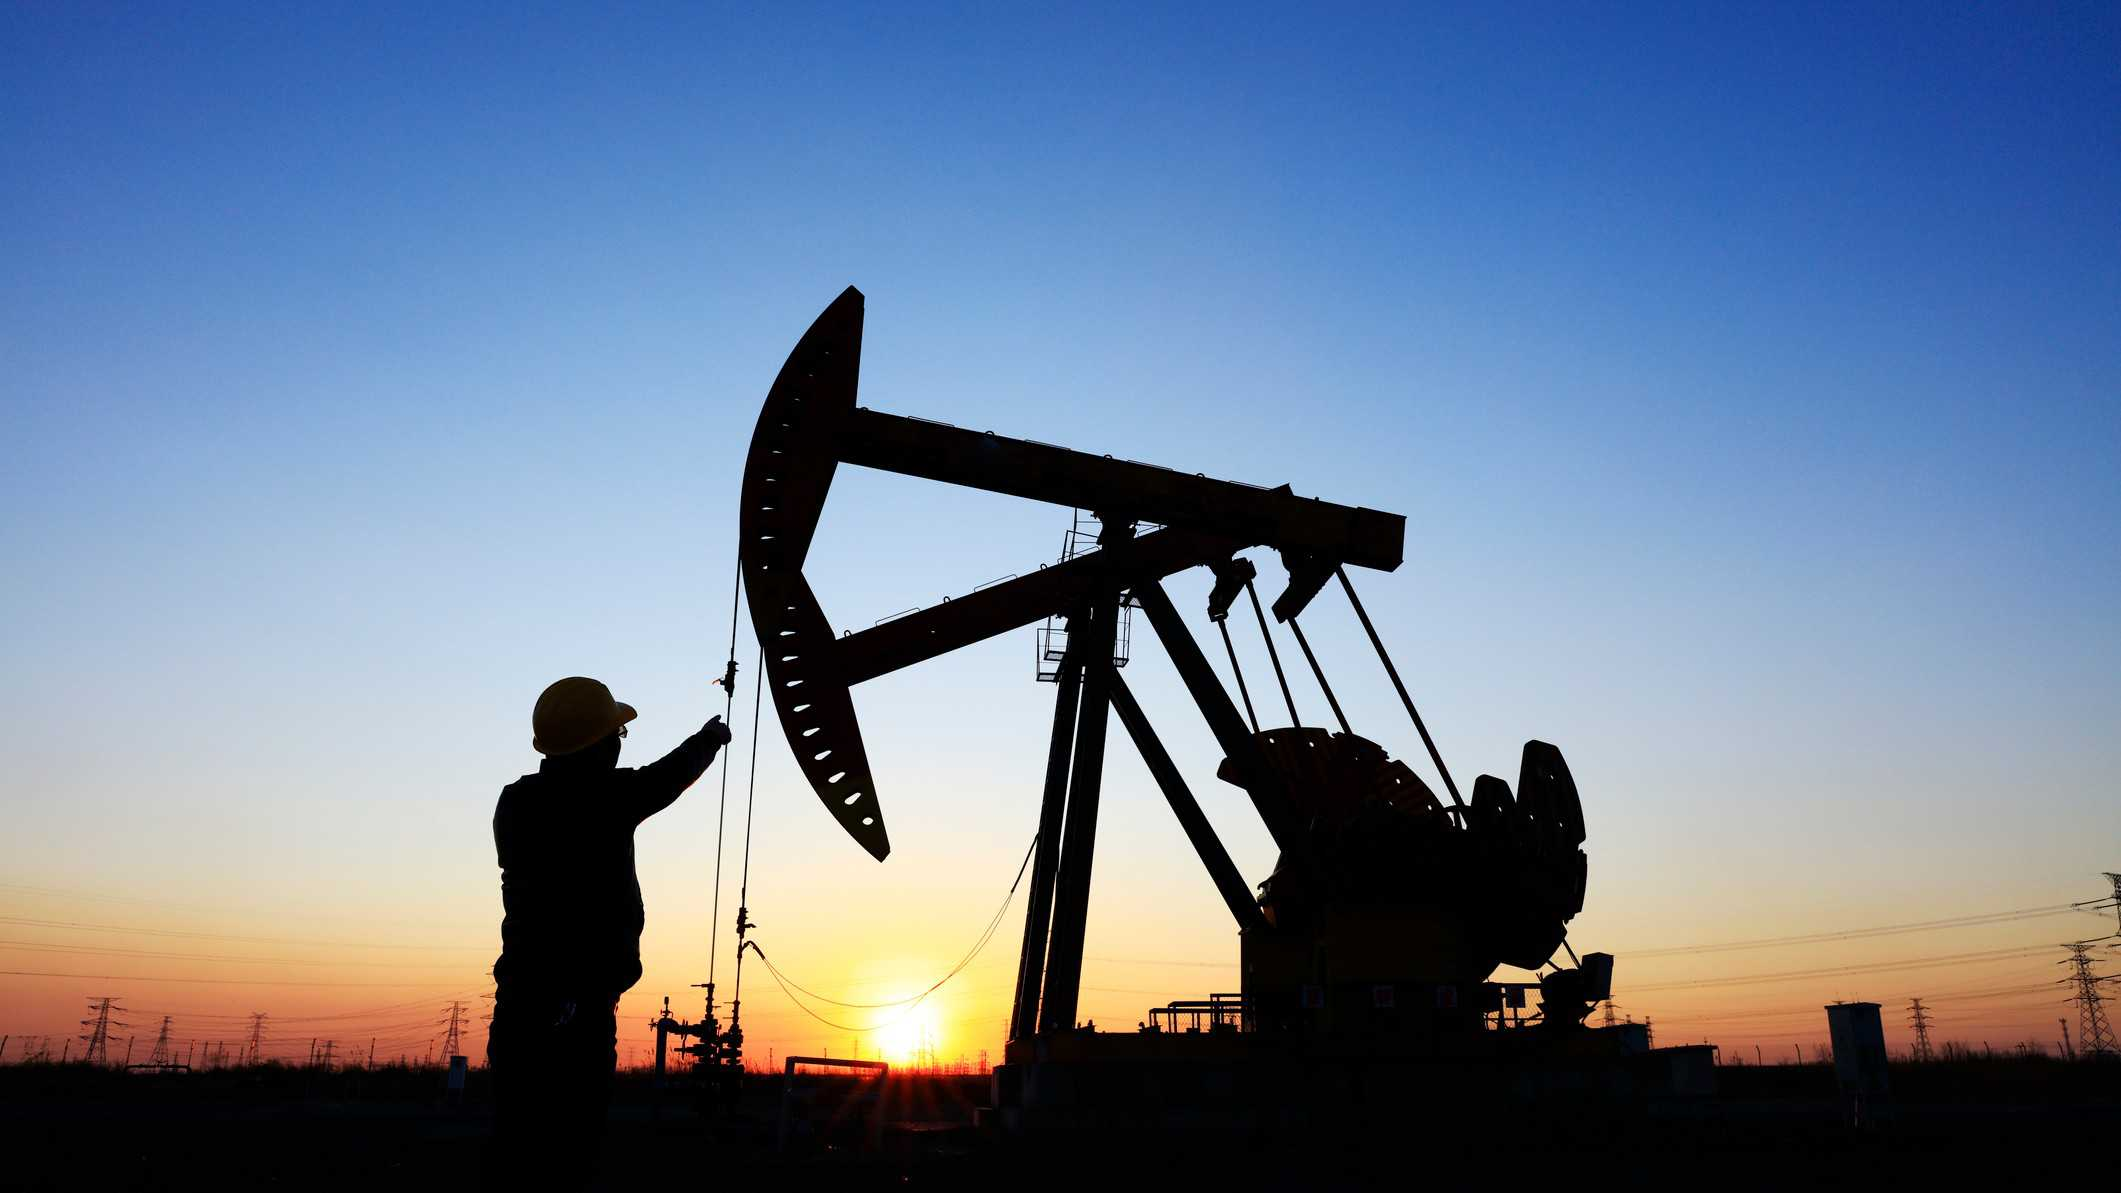 oil and gas operations at sunset signifying senex share price